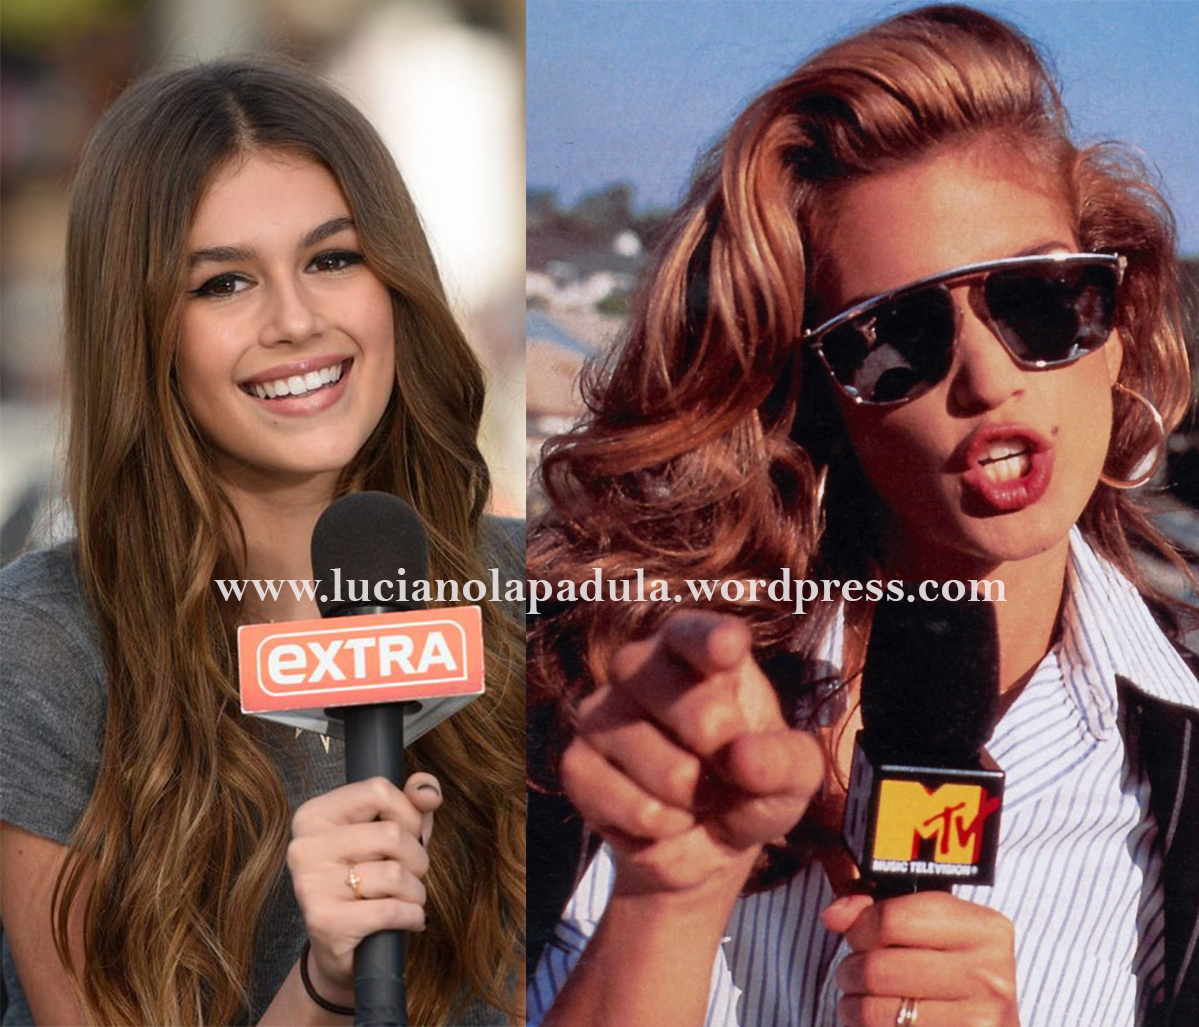 cindy crawford 90s daughter model kaia gerber comparison anorexic blog luciano lapadula blogger fashion expert history versace mtv